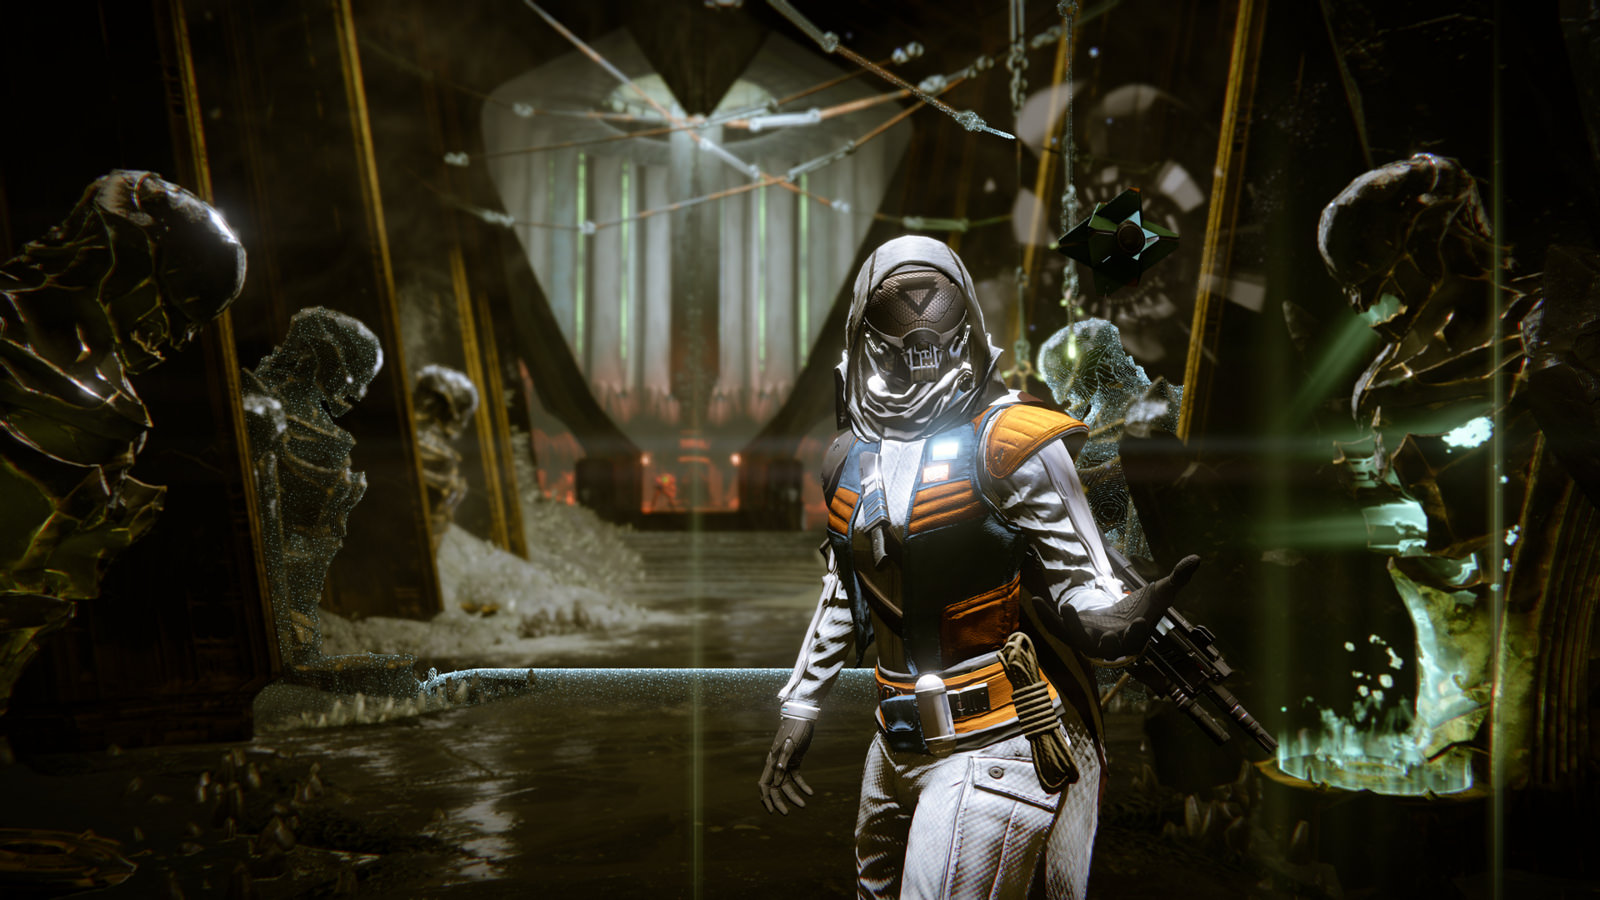 Will there ever be matchmaking for raids in destiny